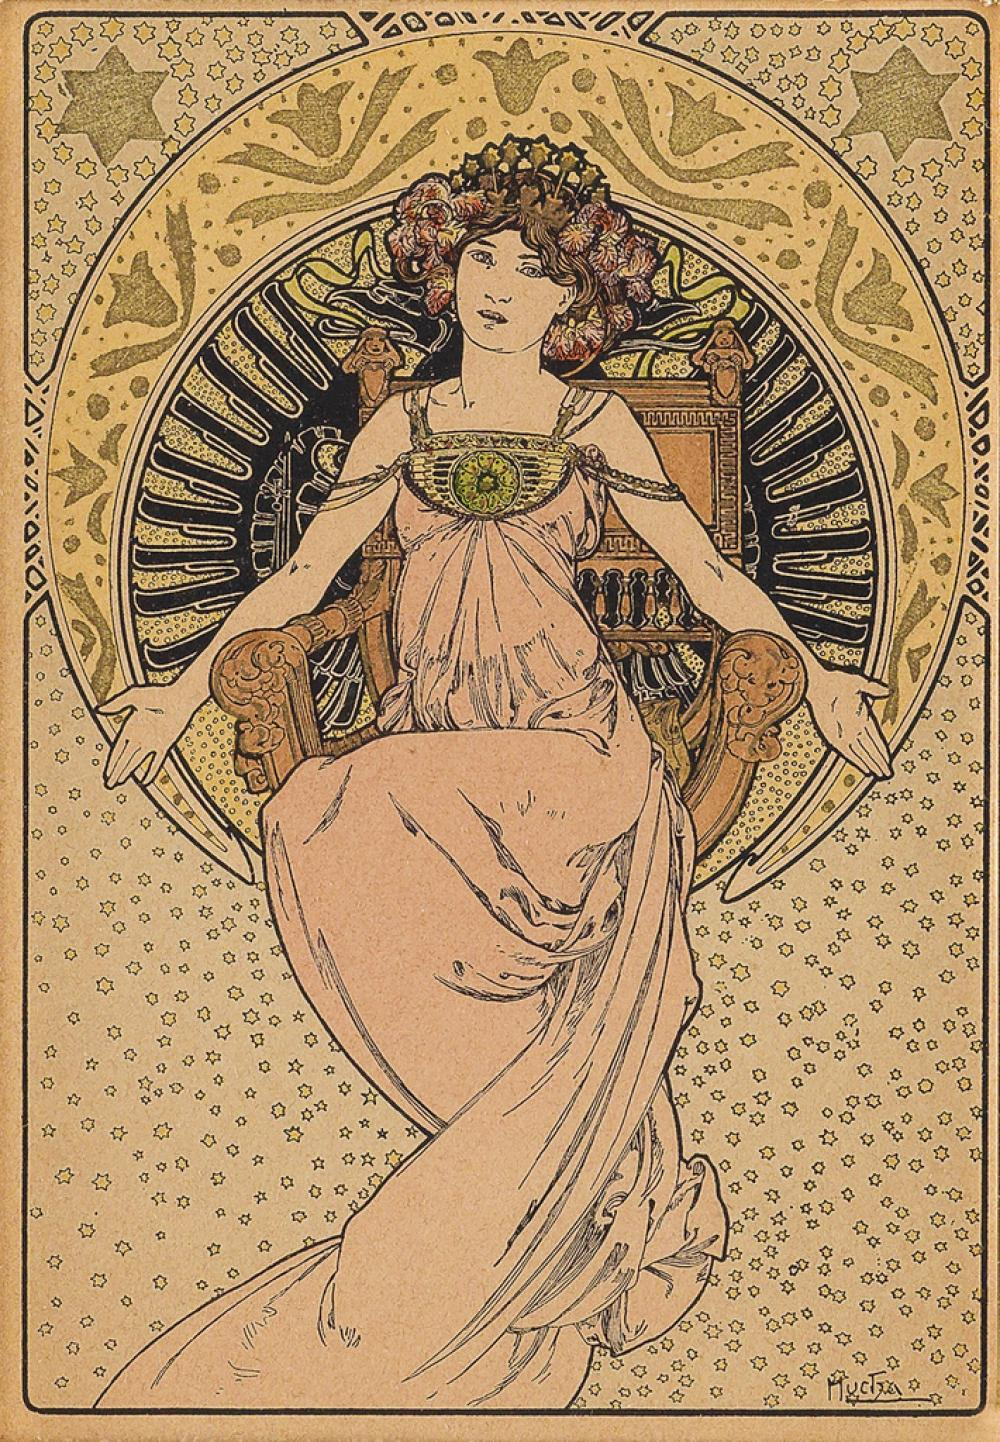 ALPHONSE MUCHA (1860-1939). [SOCIETY FOR THE BENEFIT OF AUSTRIA - HUNGARY.] Collection de Cent postcard with gilding. 1901. 5x3 inches,